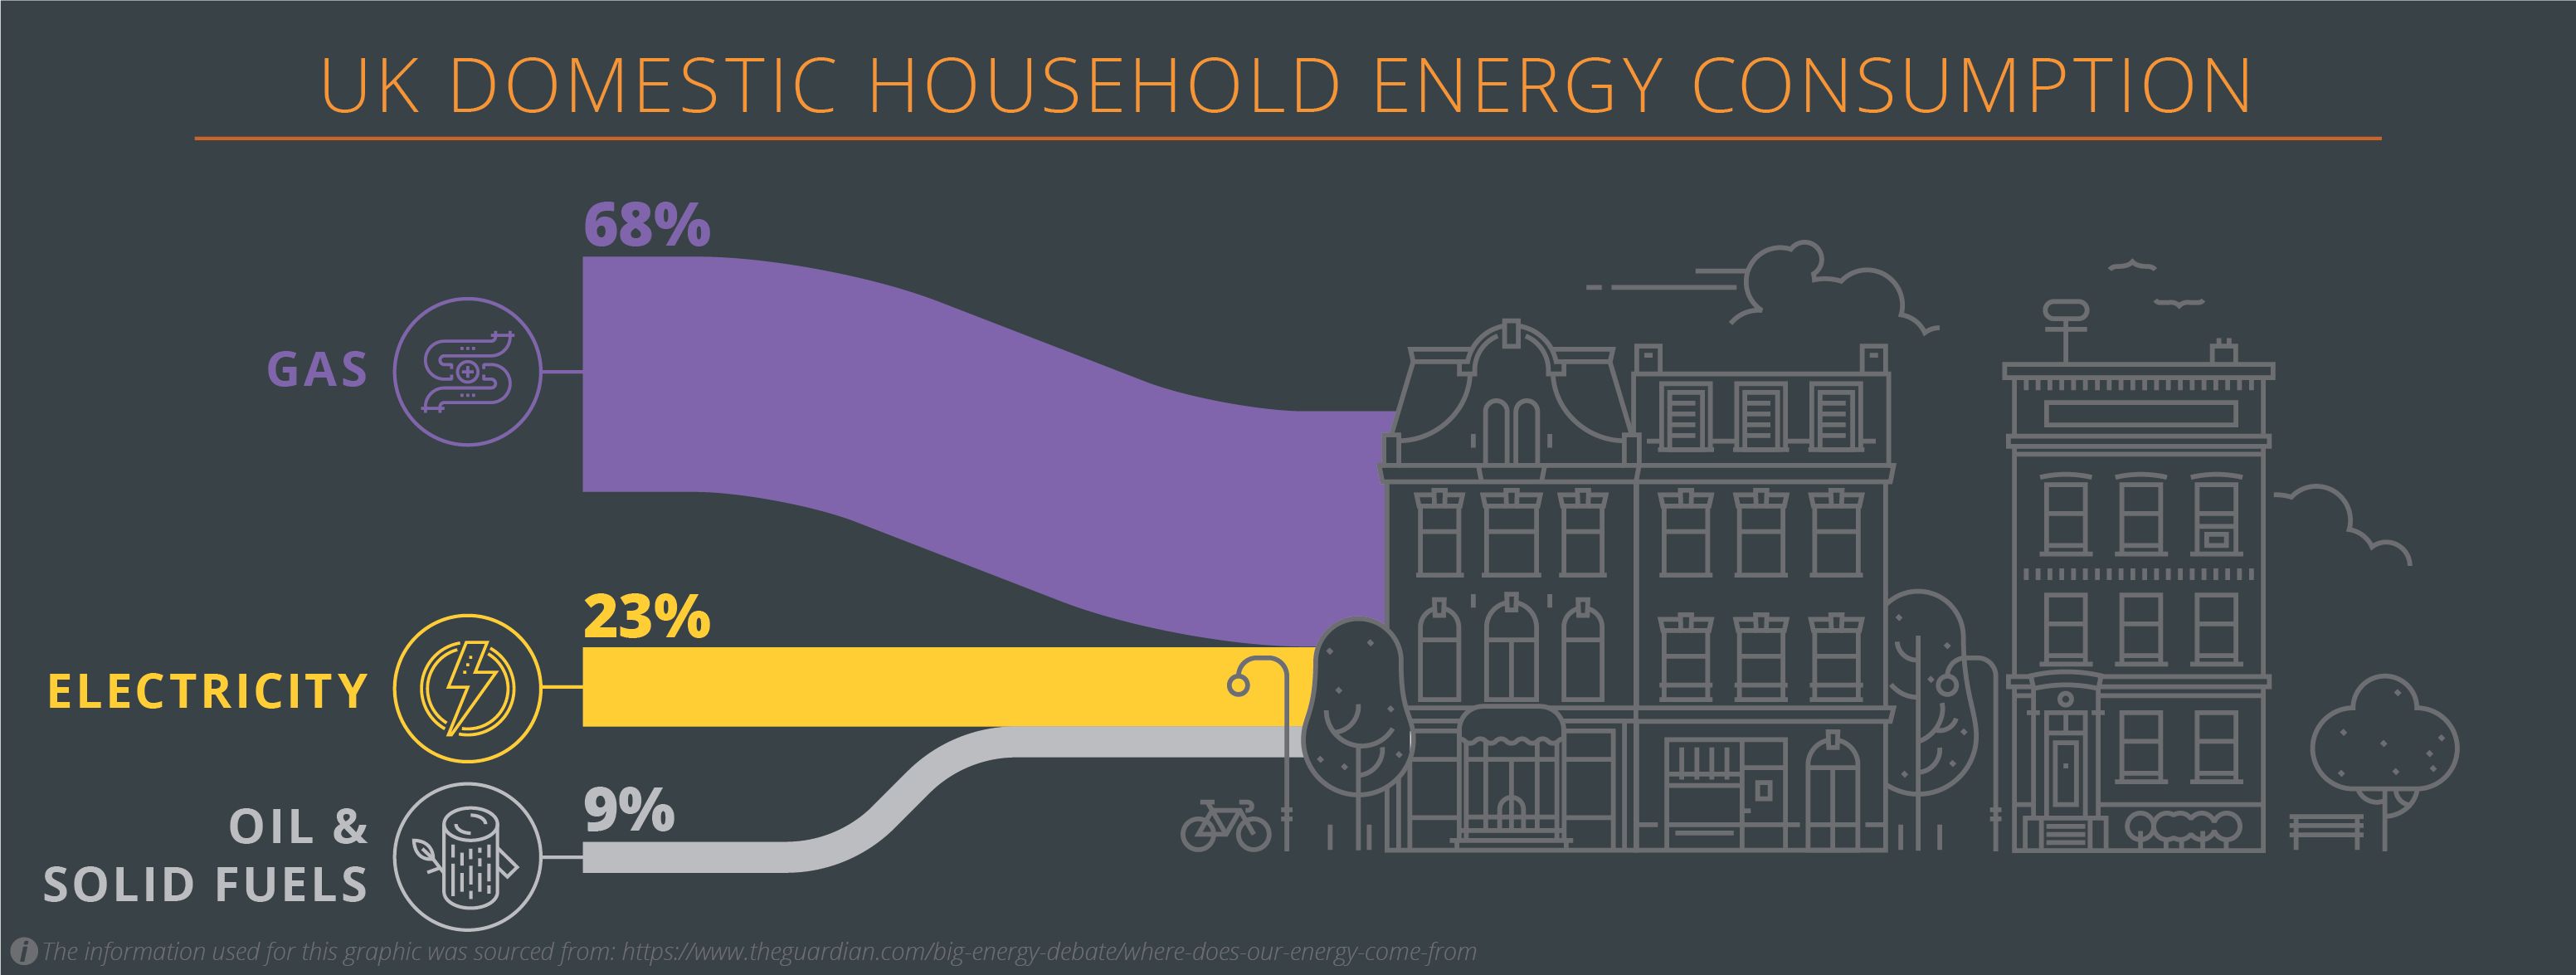 UK Domestic Household Energy Consumption